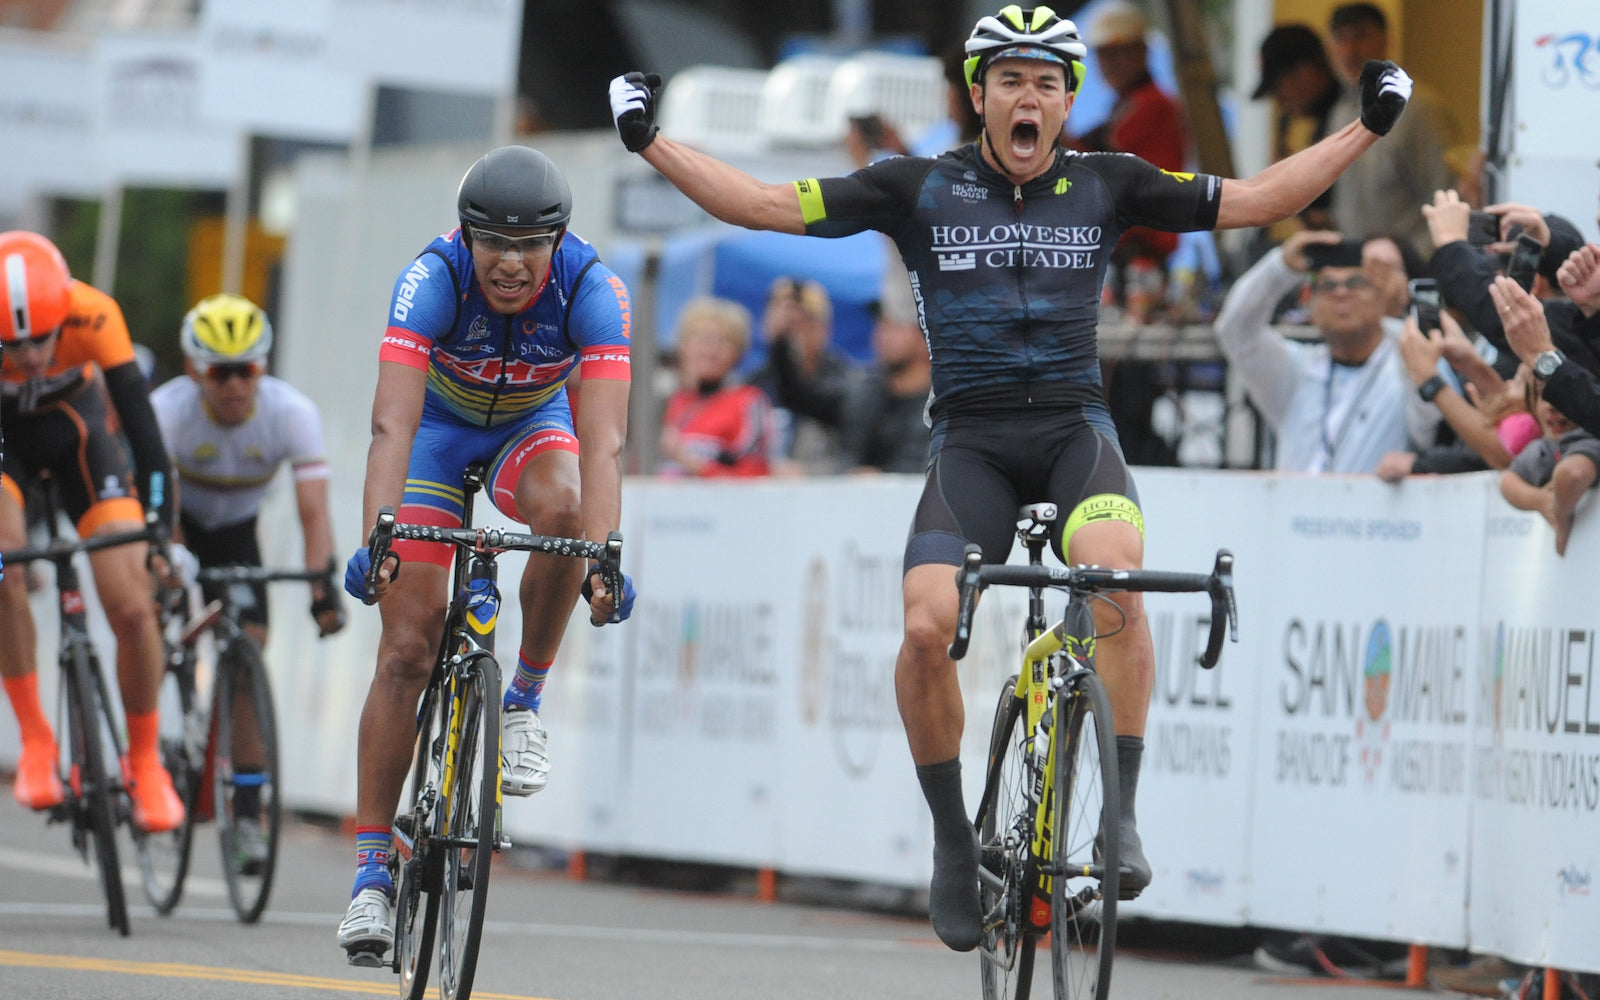 bike racer raises arms in victory at finish line. The Holowesko-Citadel  men s pro cycling team ... 348bedb55